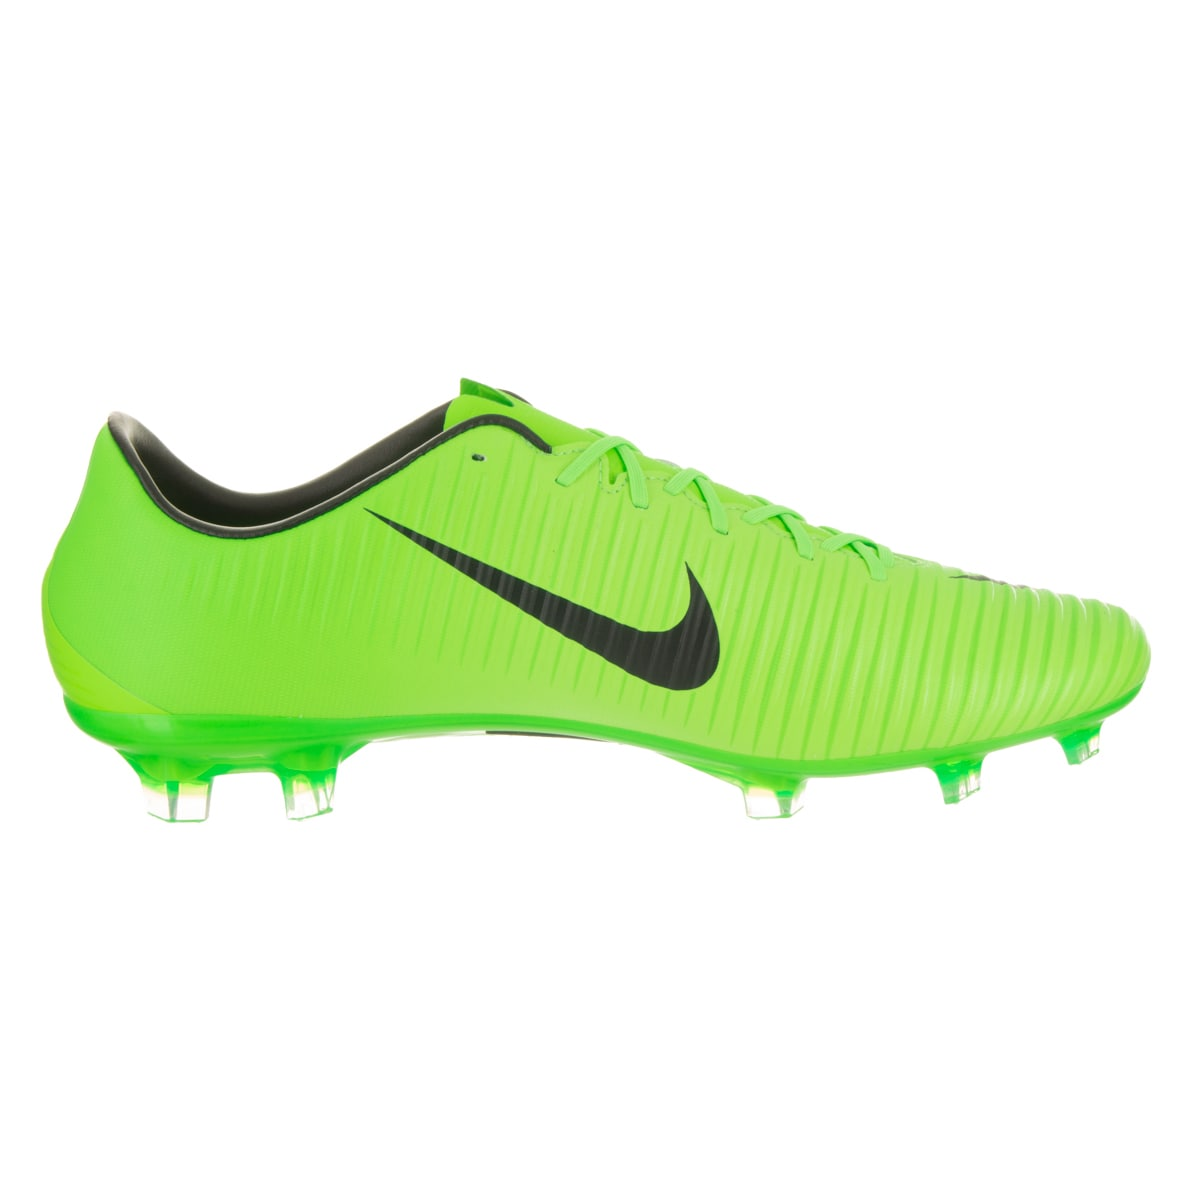 0c3144d69ec Shop Nike Men s Mercurial Veloce III Fg Electric Green Synthetic Leather  Soccer Cleat - Free Shipping Today - Overstock - 14967036